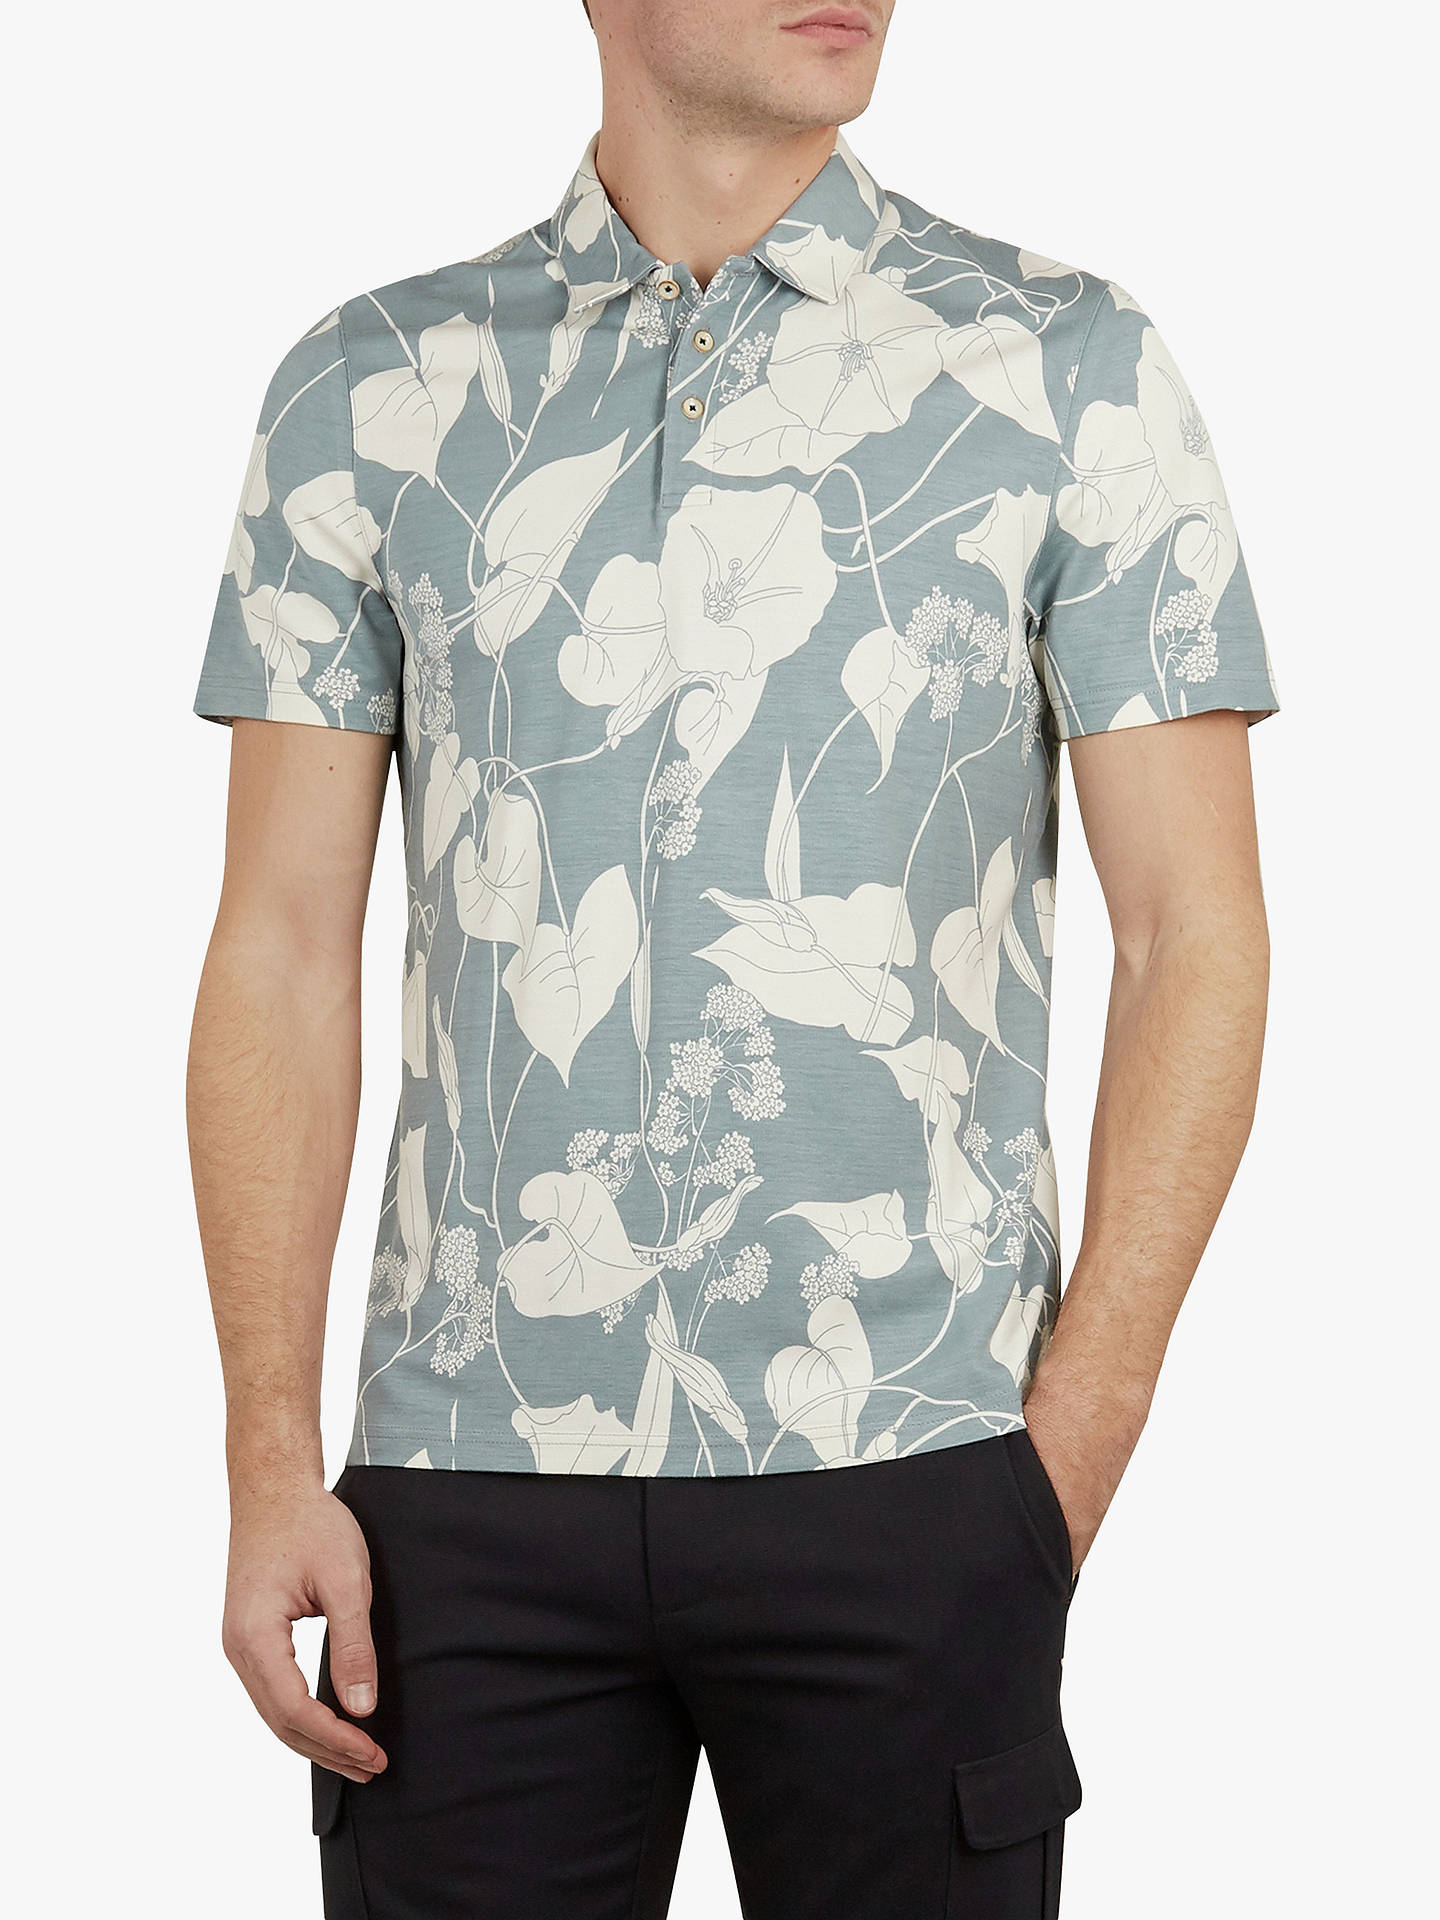 26f35e080 Buy Ted Baker Willow Floral Print Polo Shirt, Light Blue, S Online at  johnlewis ...